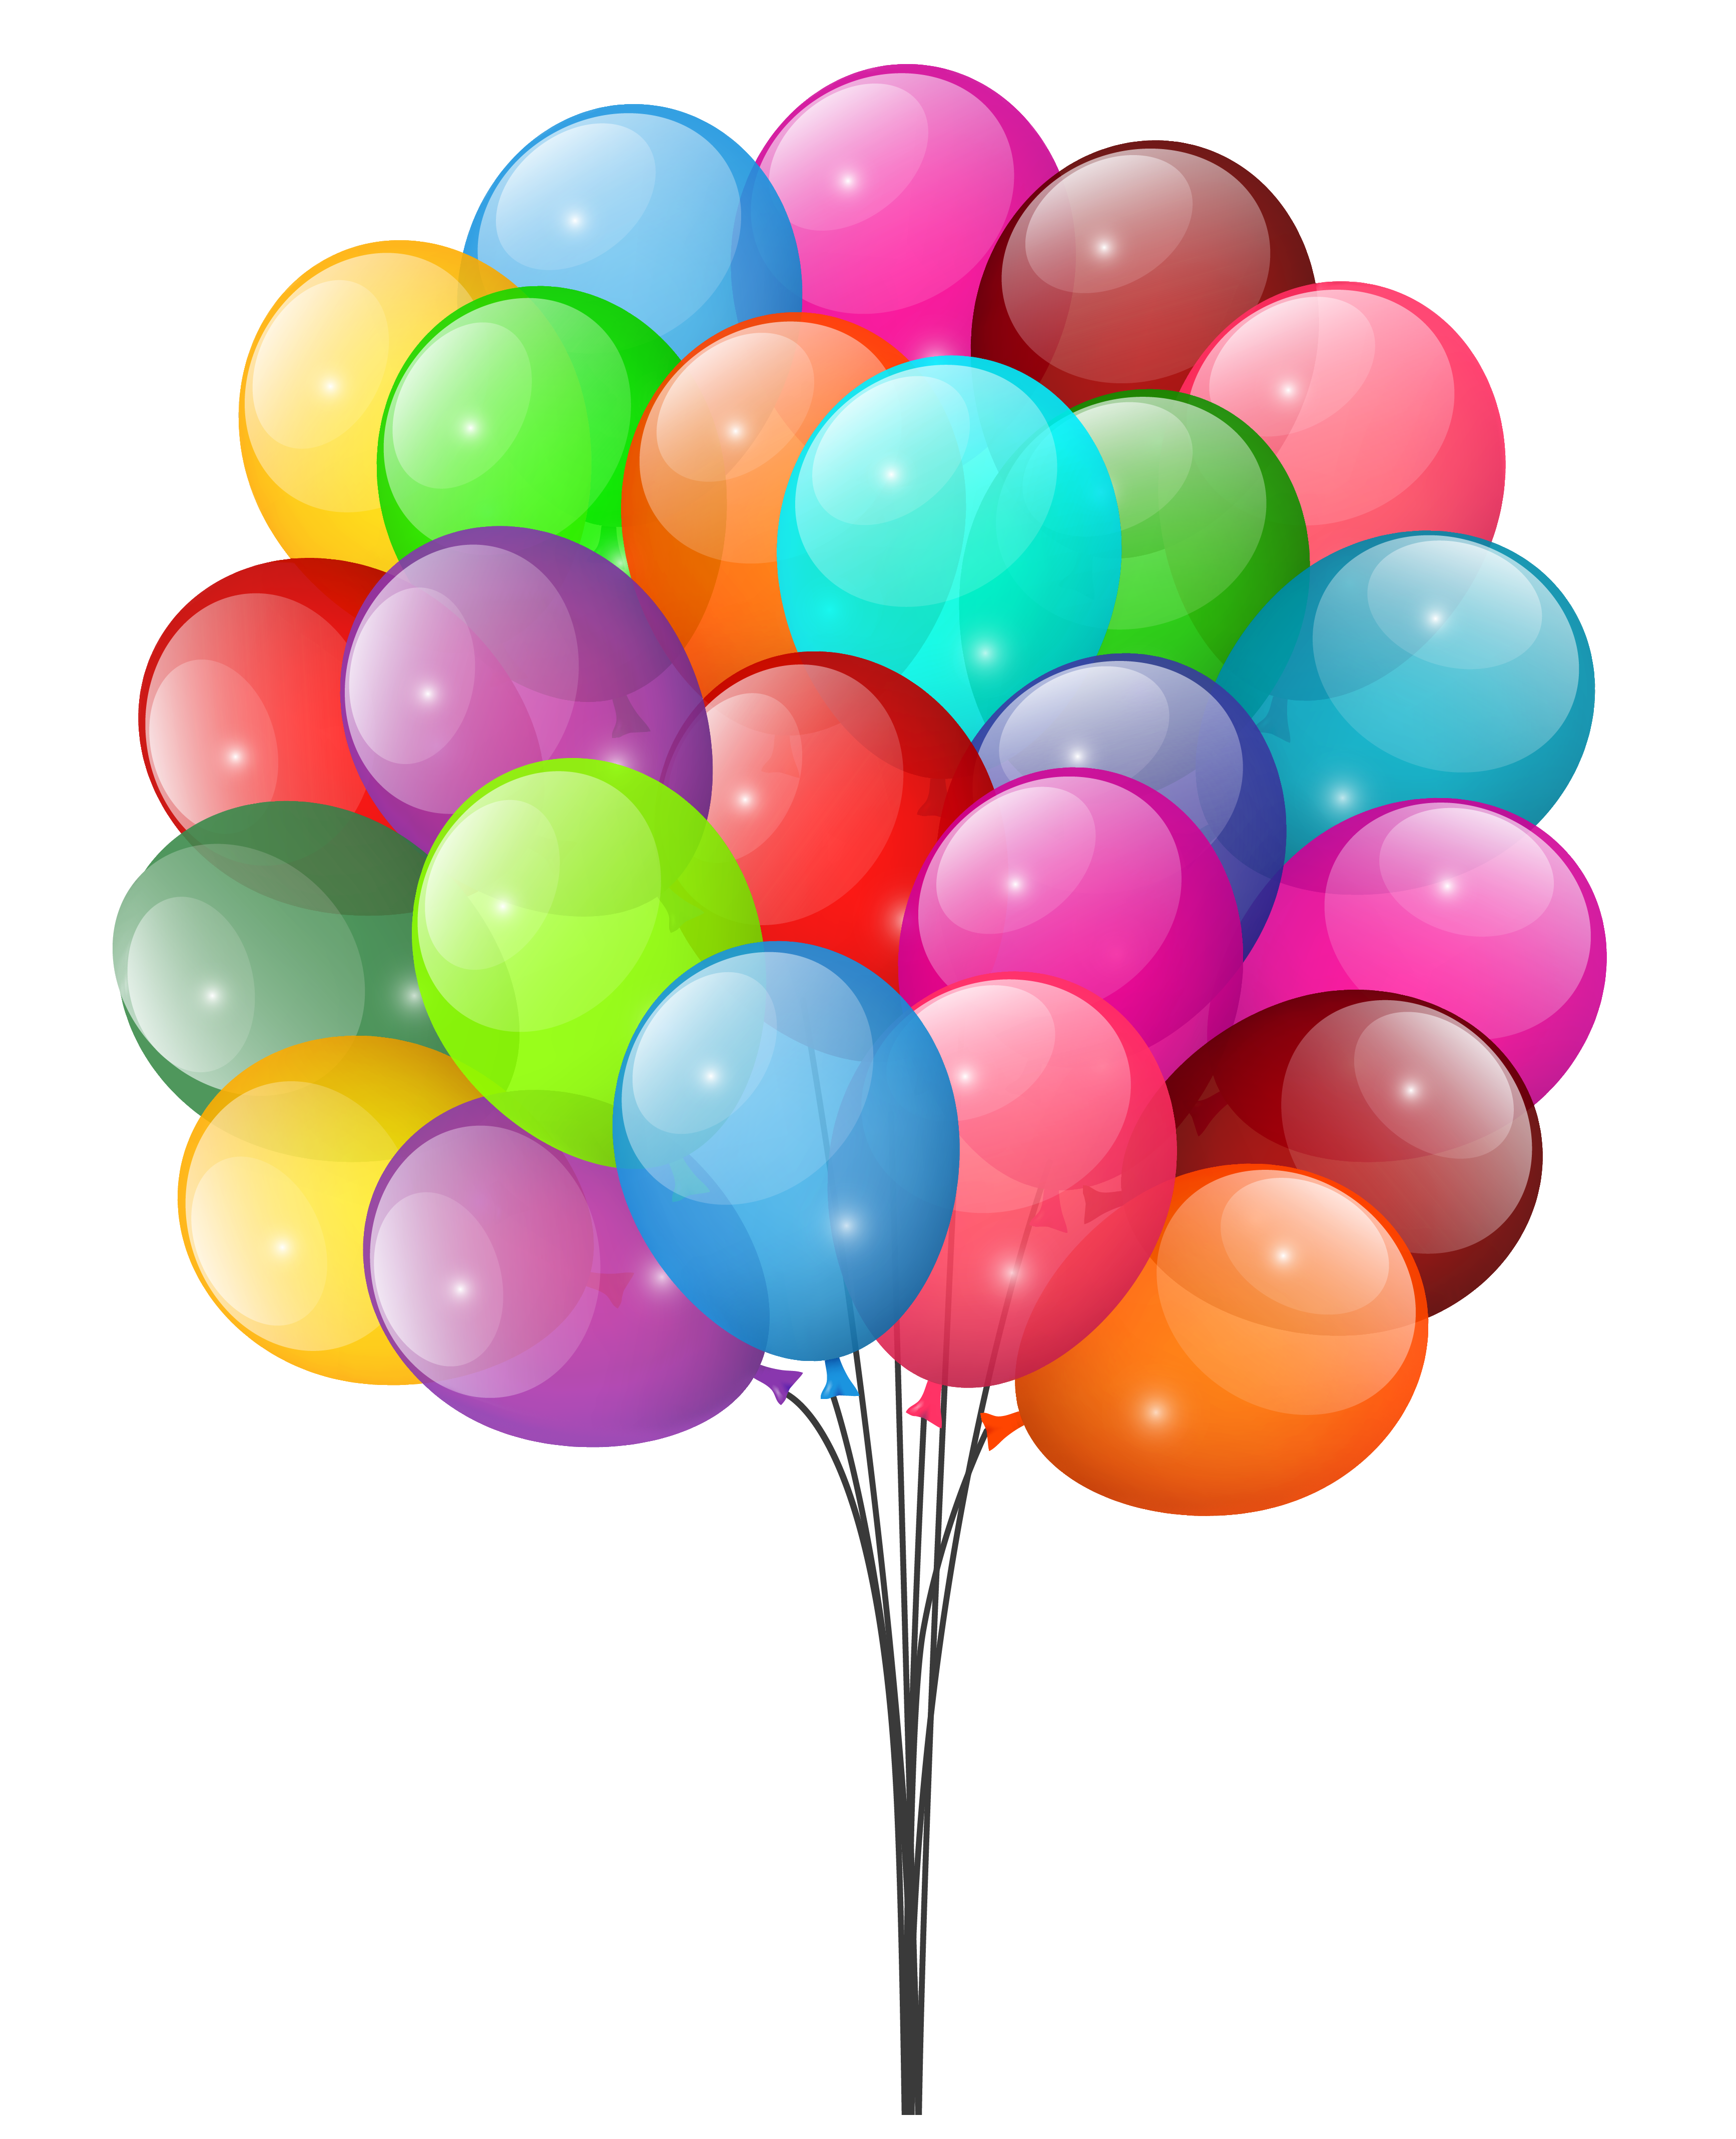 Free Real Balloons Cliparts, Download Free Clip Art, Free Clip Art.